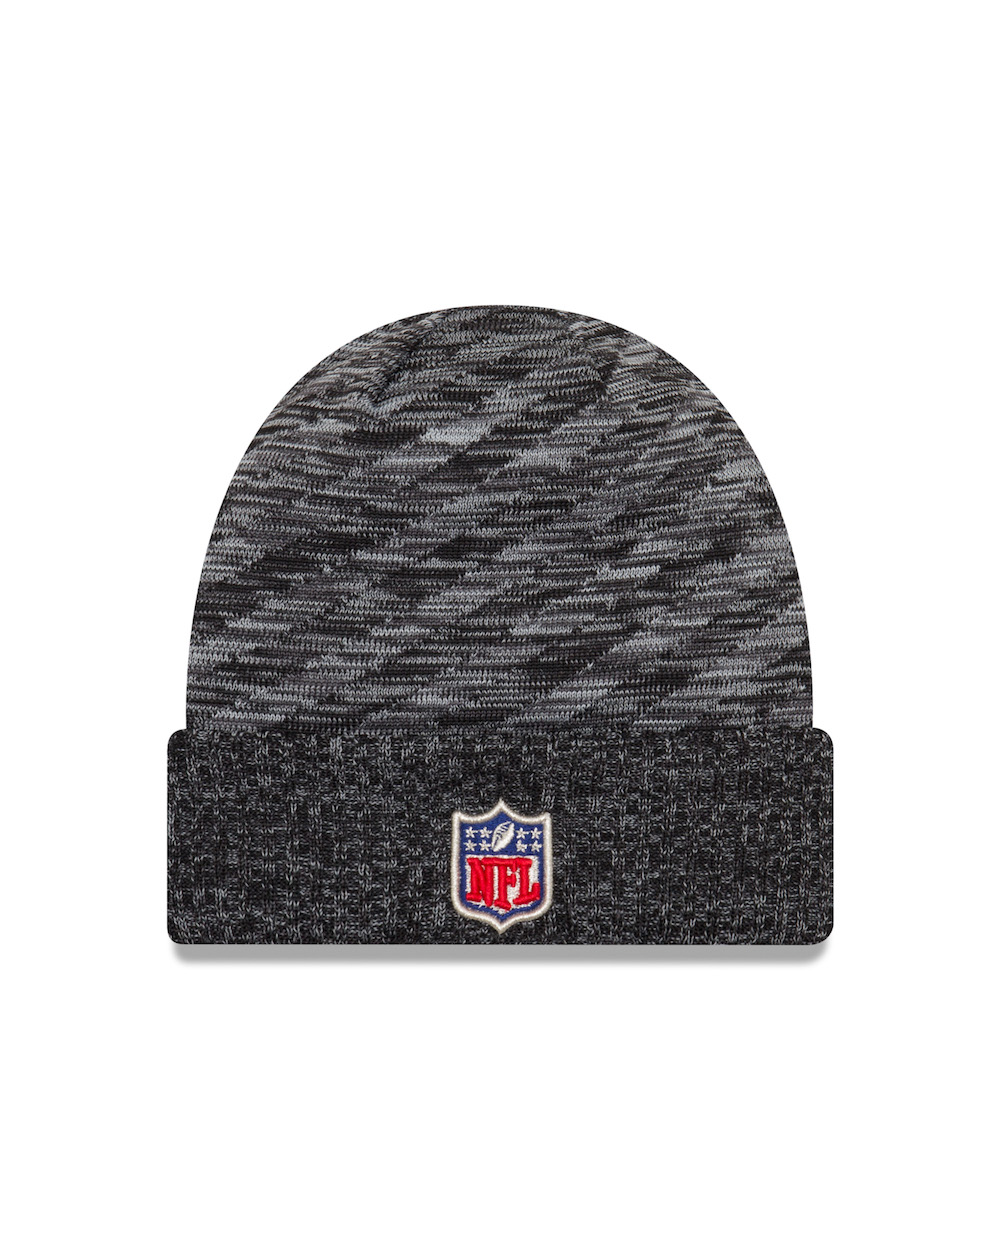 The New Era Official NFL Cold Weather Collection is available right now  online for  28 USD. You can pick through all 32 NFL teams bfe34ae22695